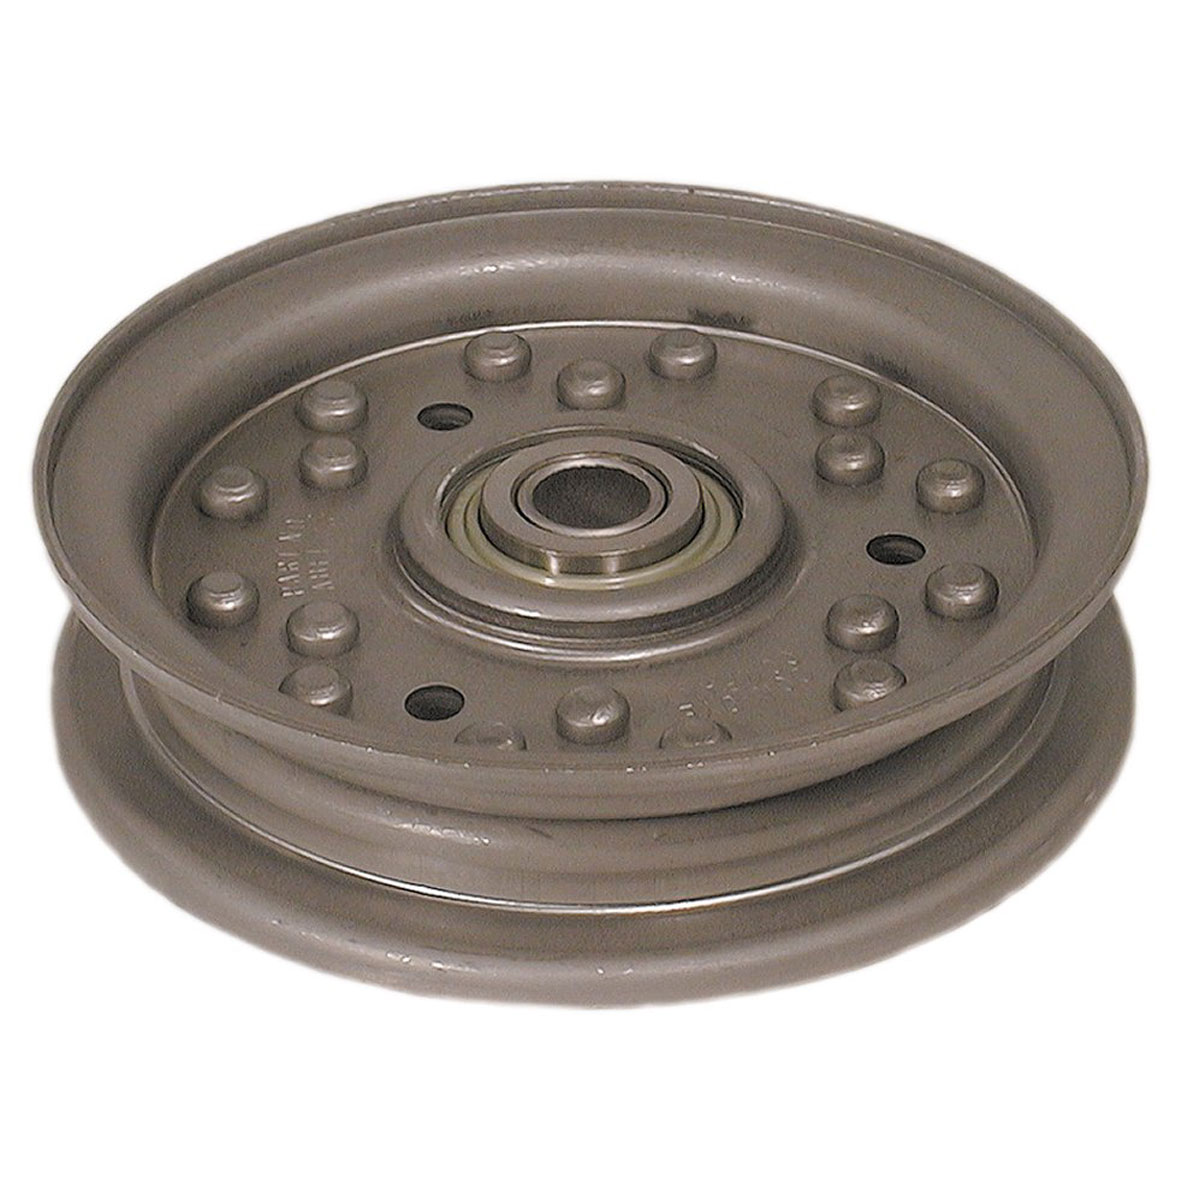 30224 Dixie Chopper Flat Idler Pulley